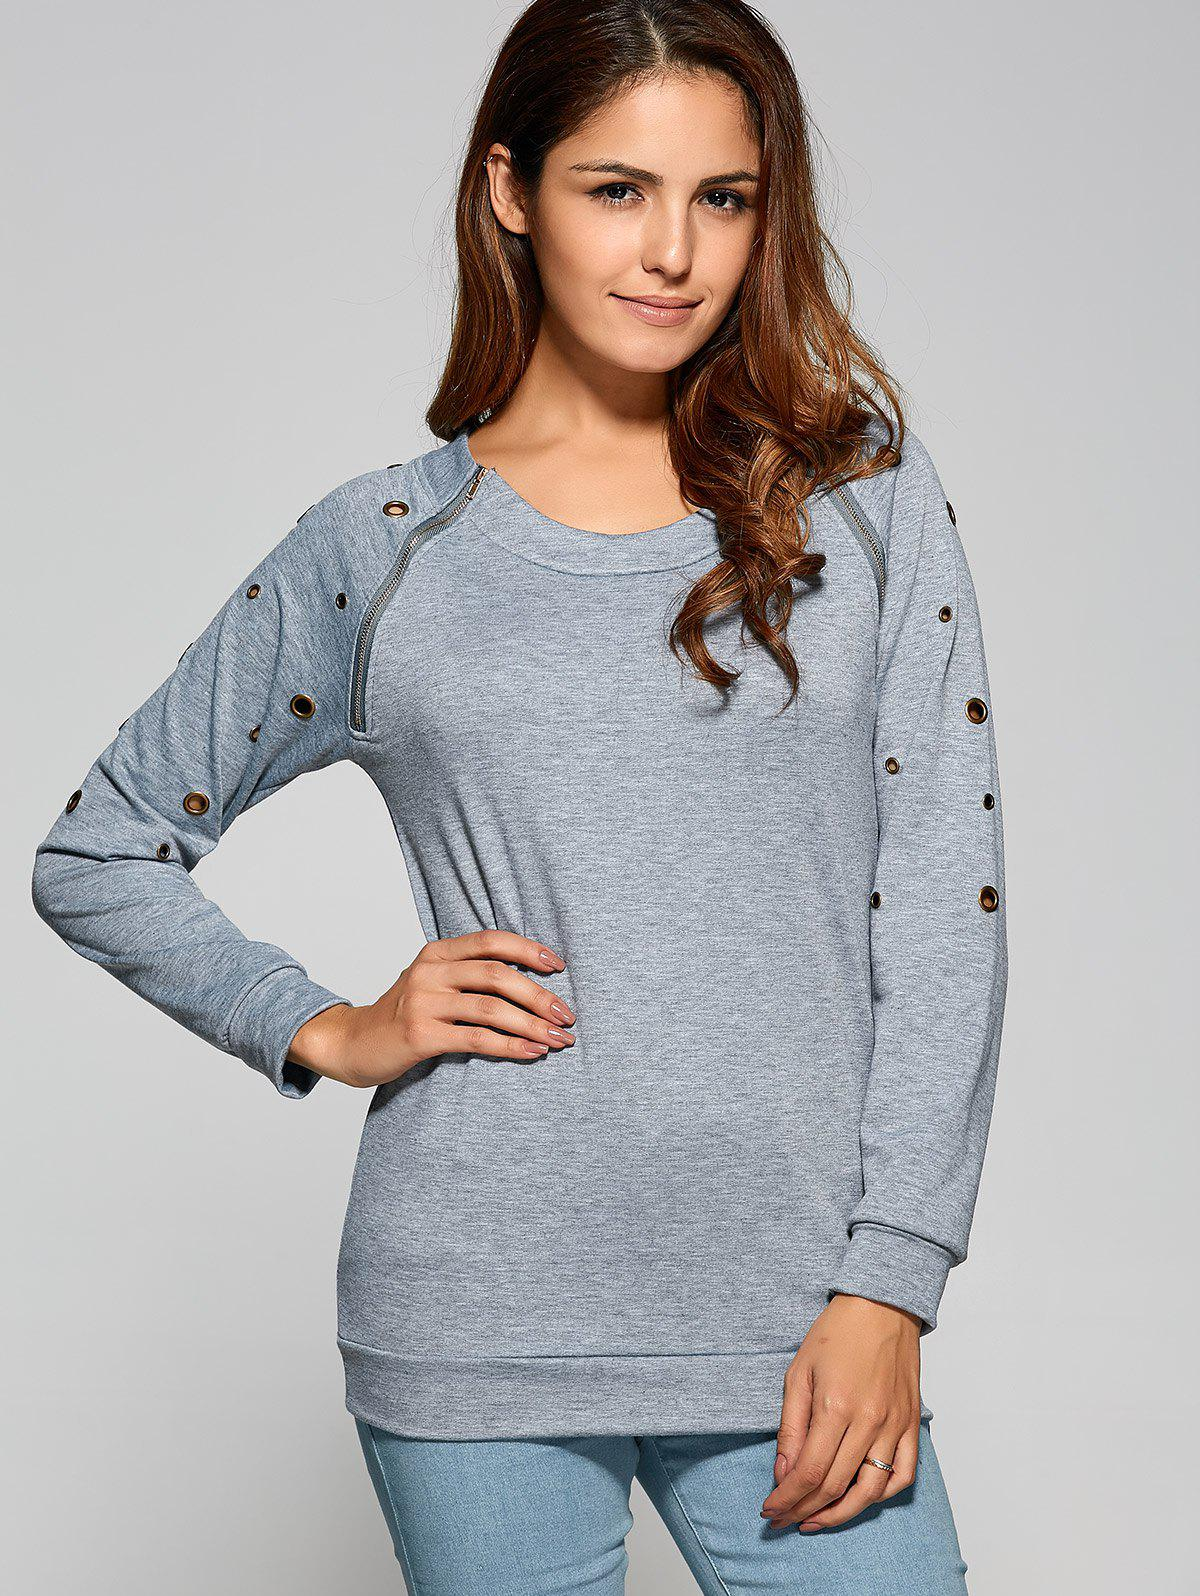 Zipper Openwork Detailed Sweatshirt - GRAY M